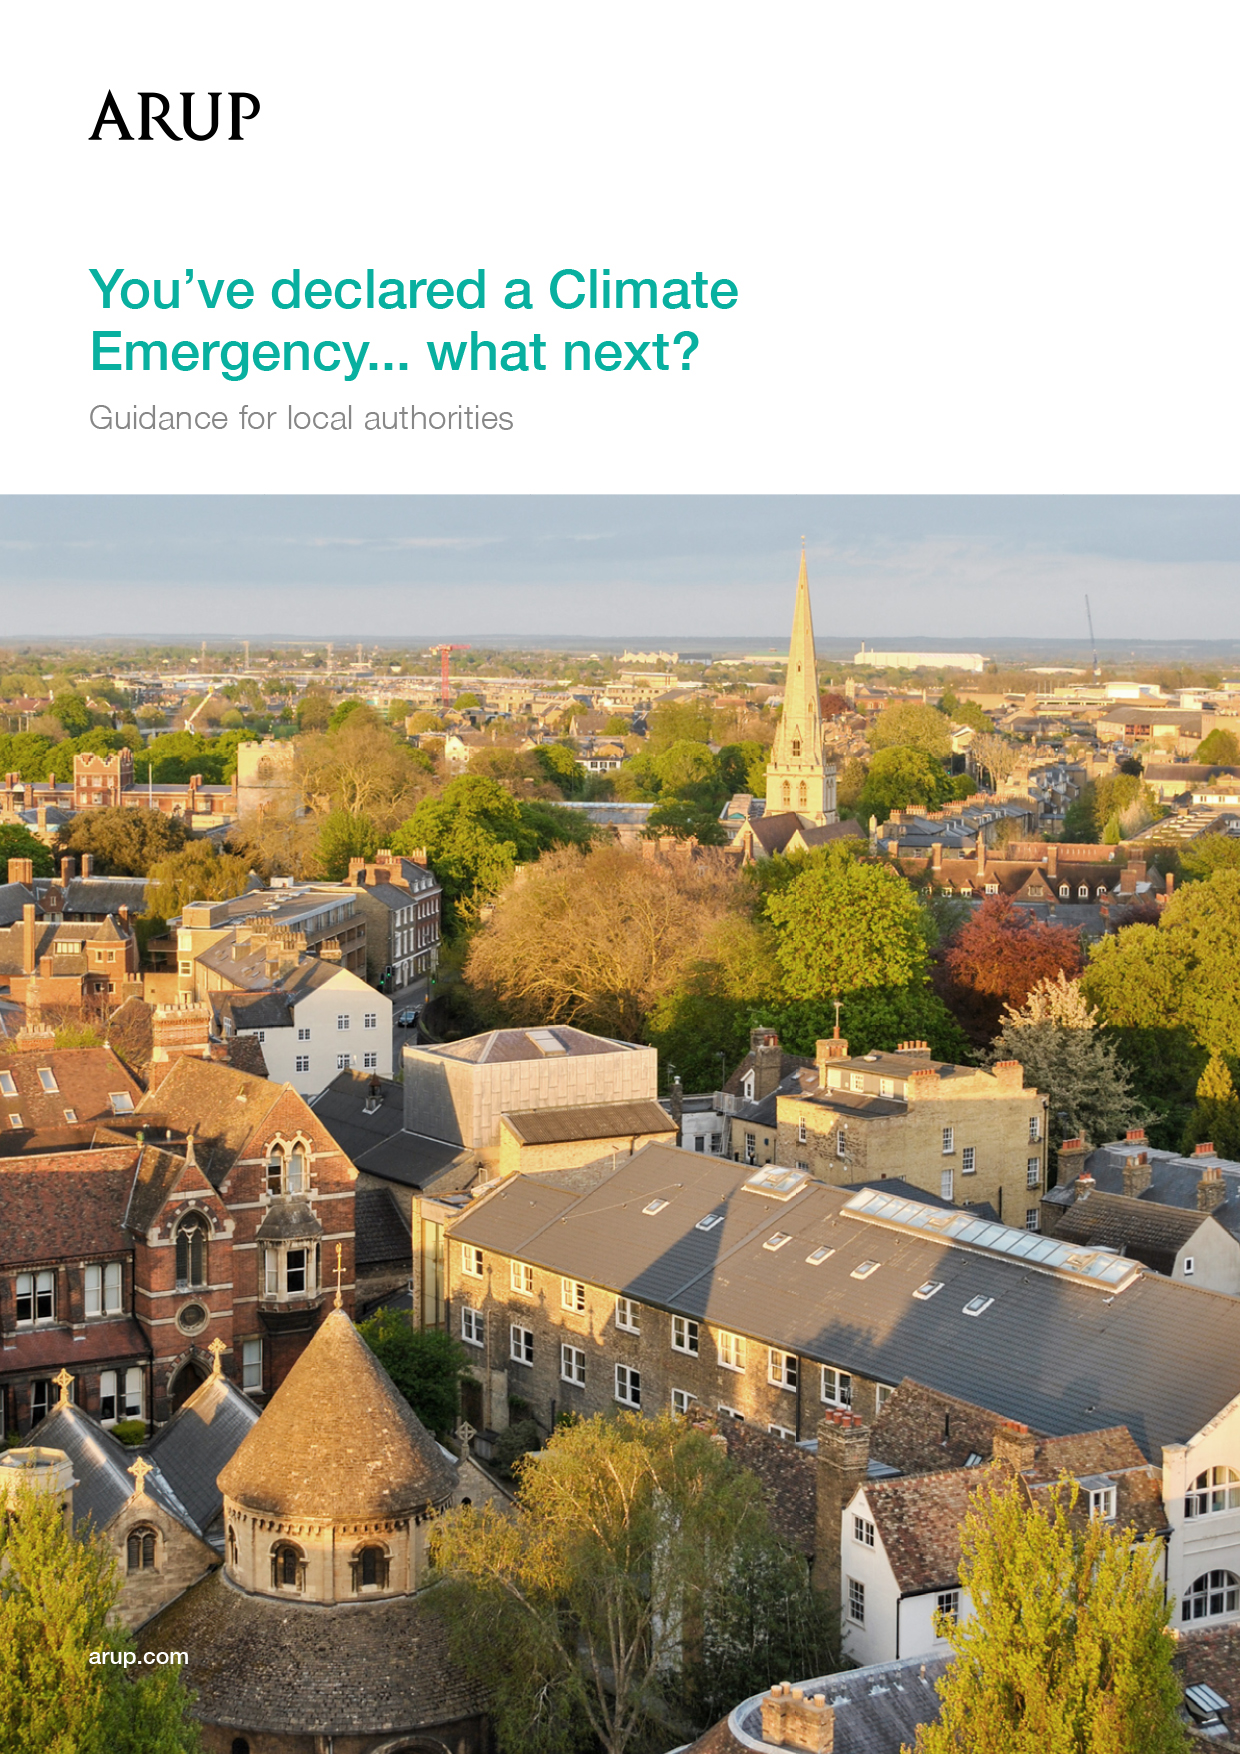 You've declared a Climate Emergency... what next?